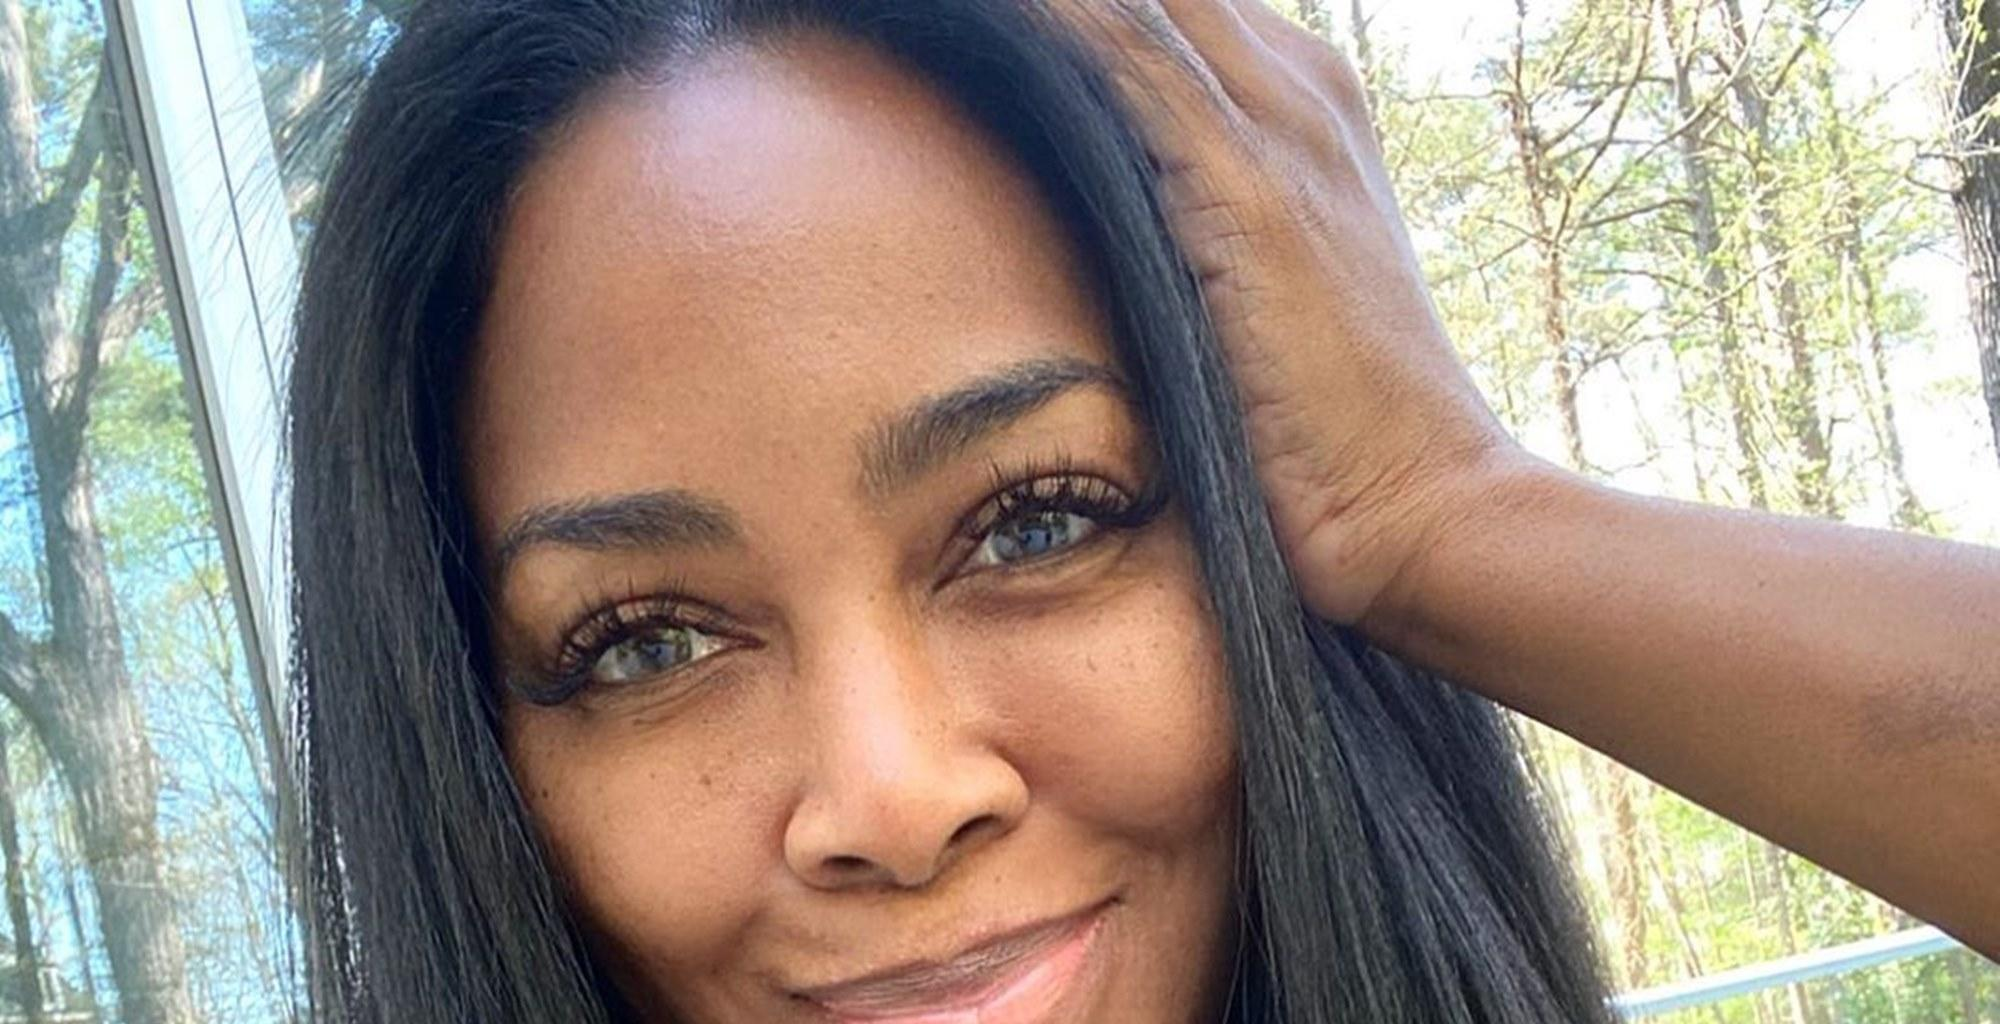 Kenya Moore Shares A Throwback Photo From Her Modeling Days - See it Here